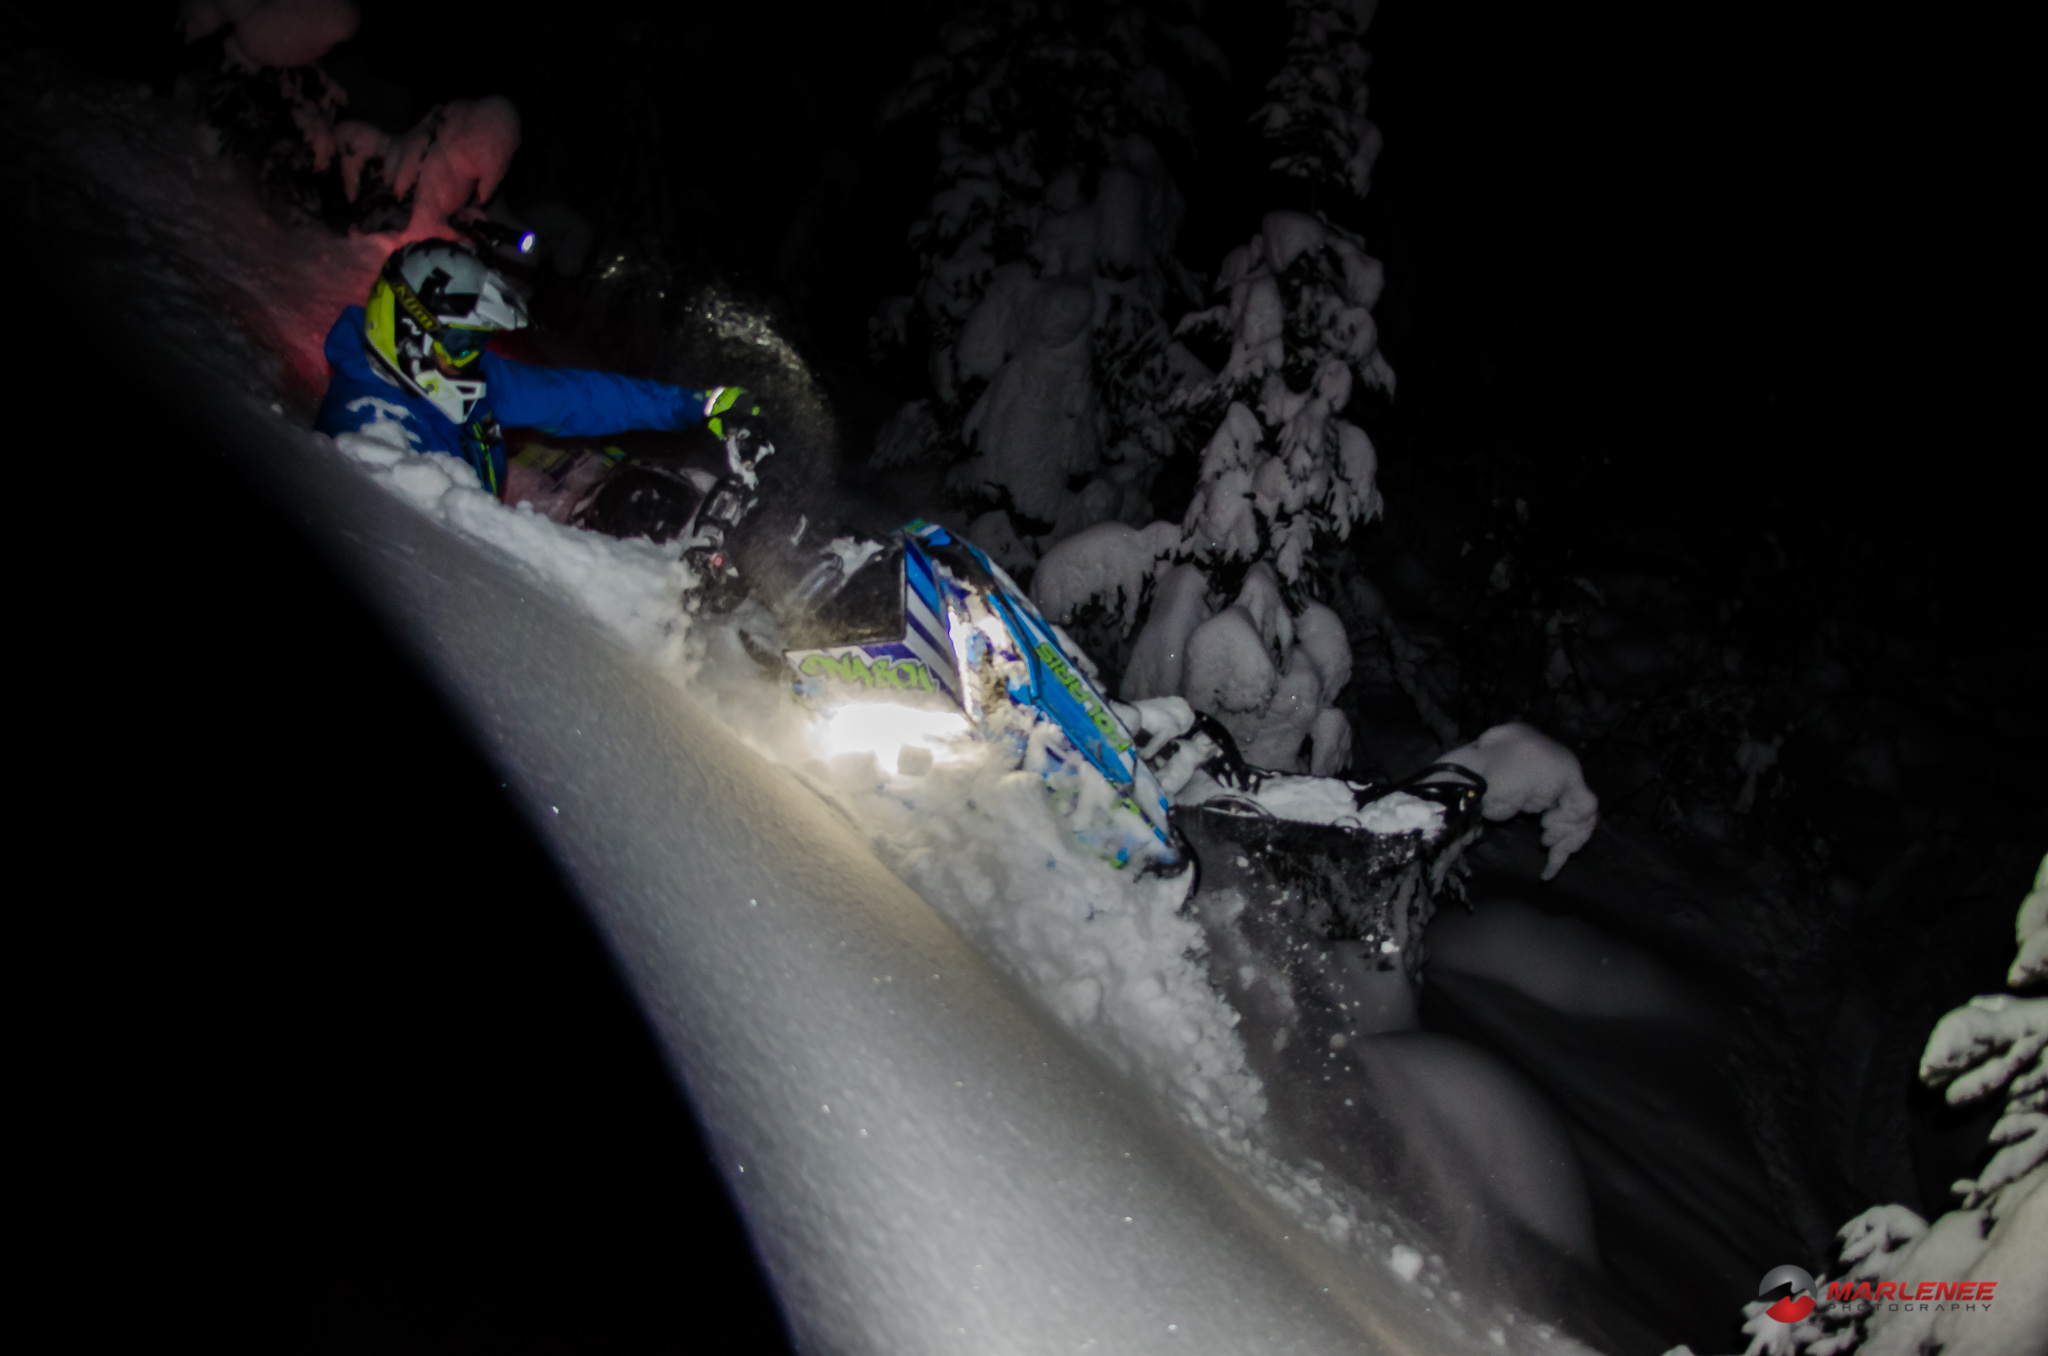 Adam Onasch tears it up in the dark